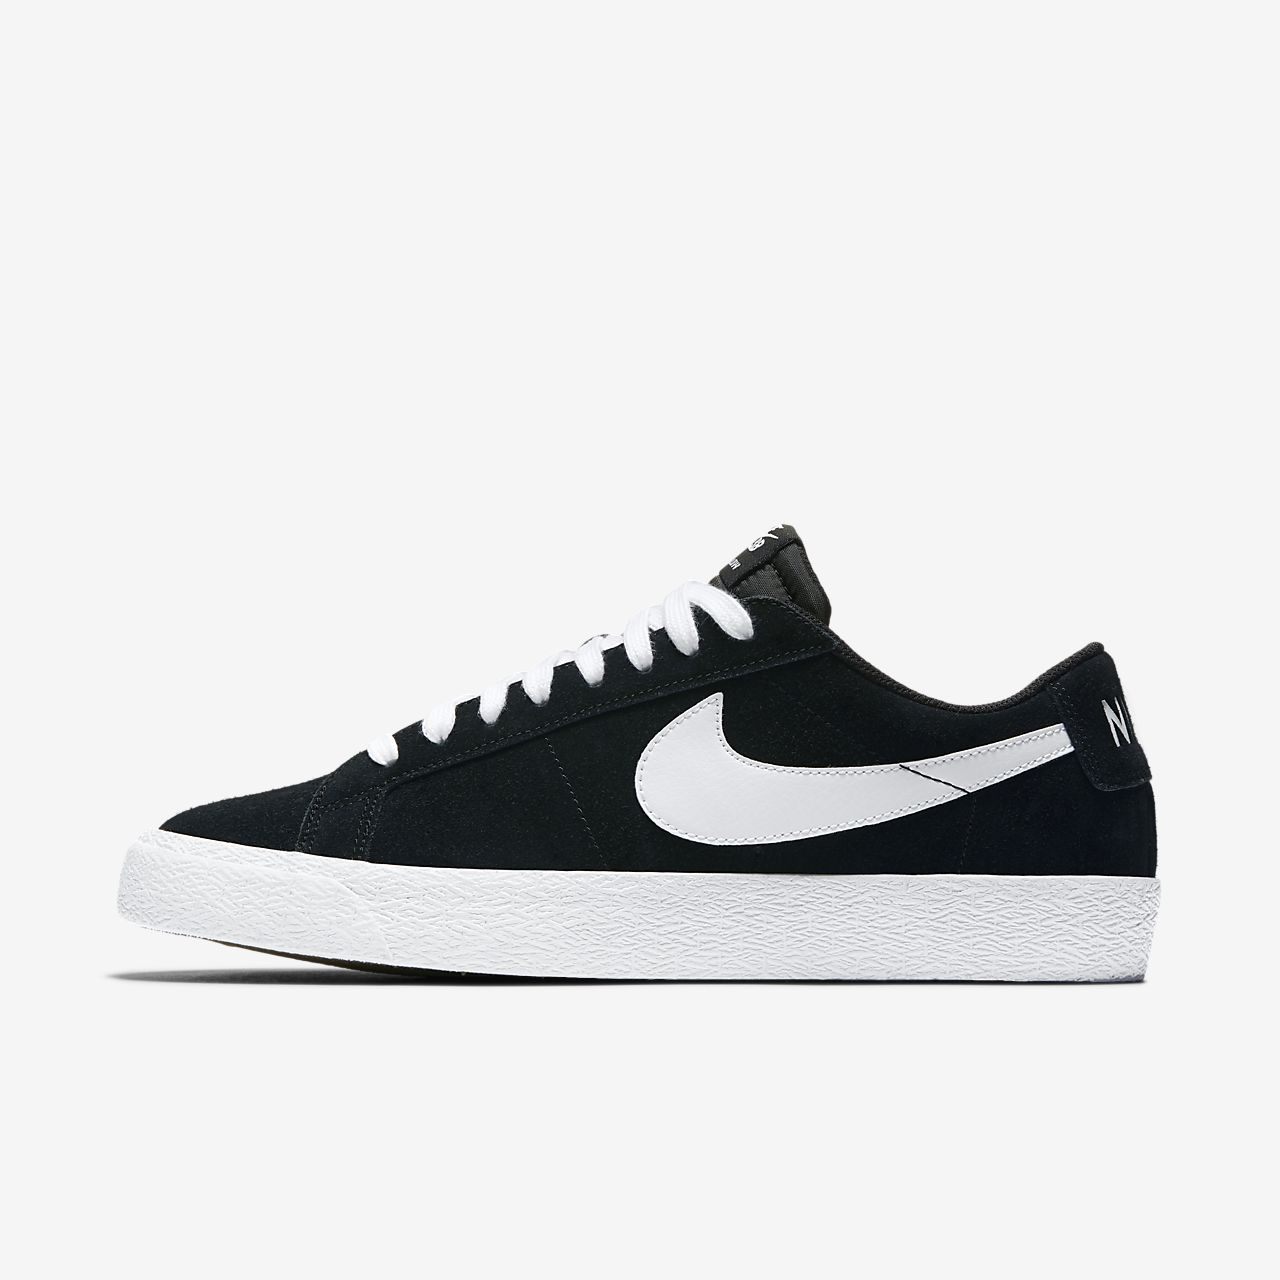 reputable site 87cff 01799 ... Nike SB Blazer Zoom Low Mens Skateboarding Shoe